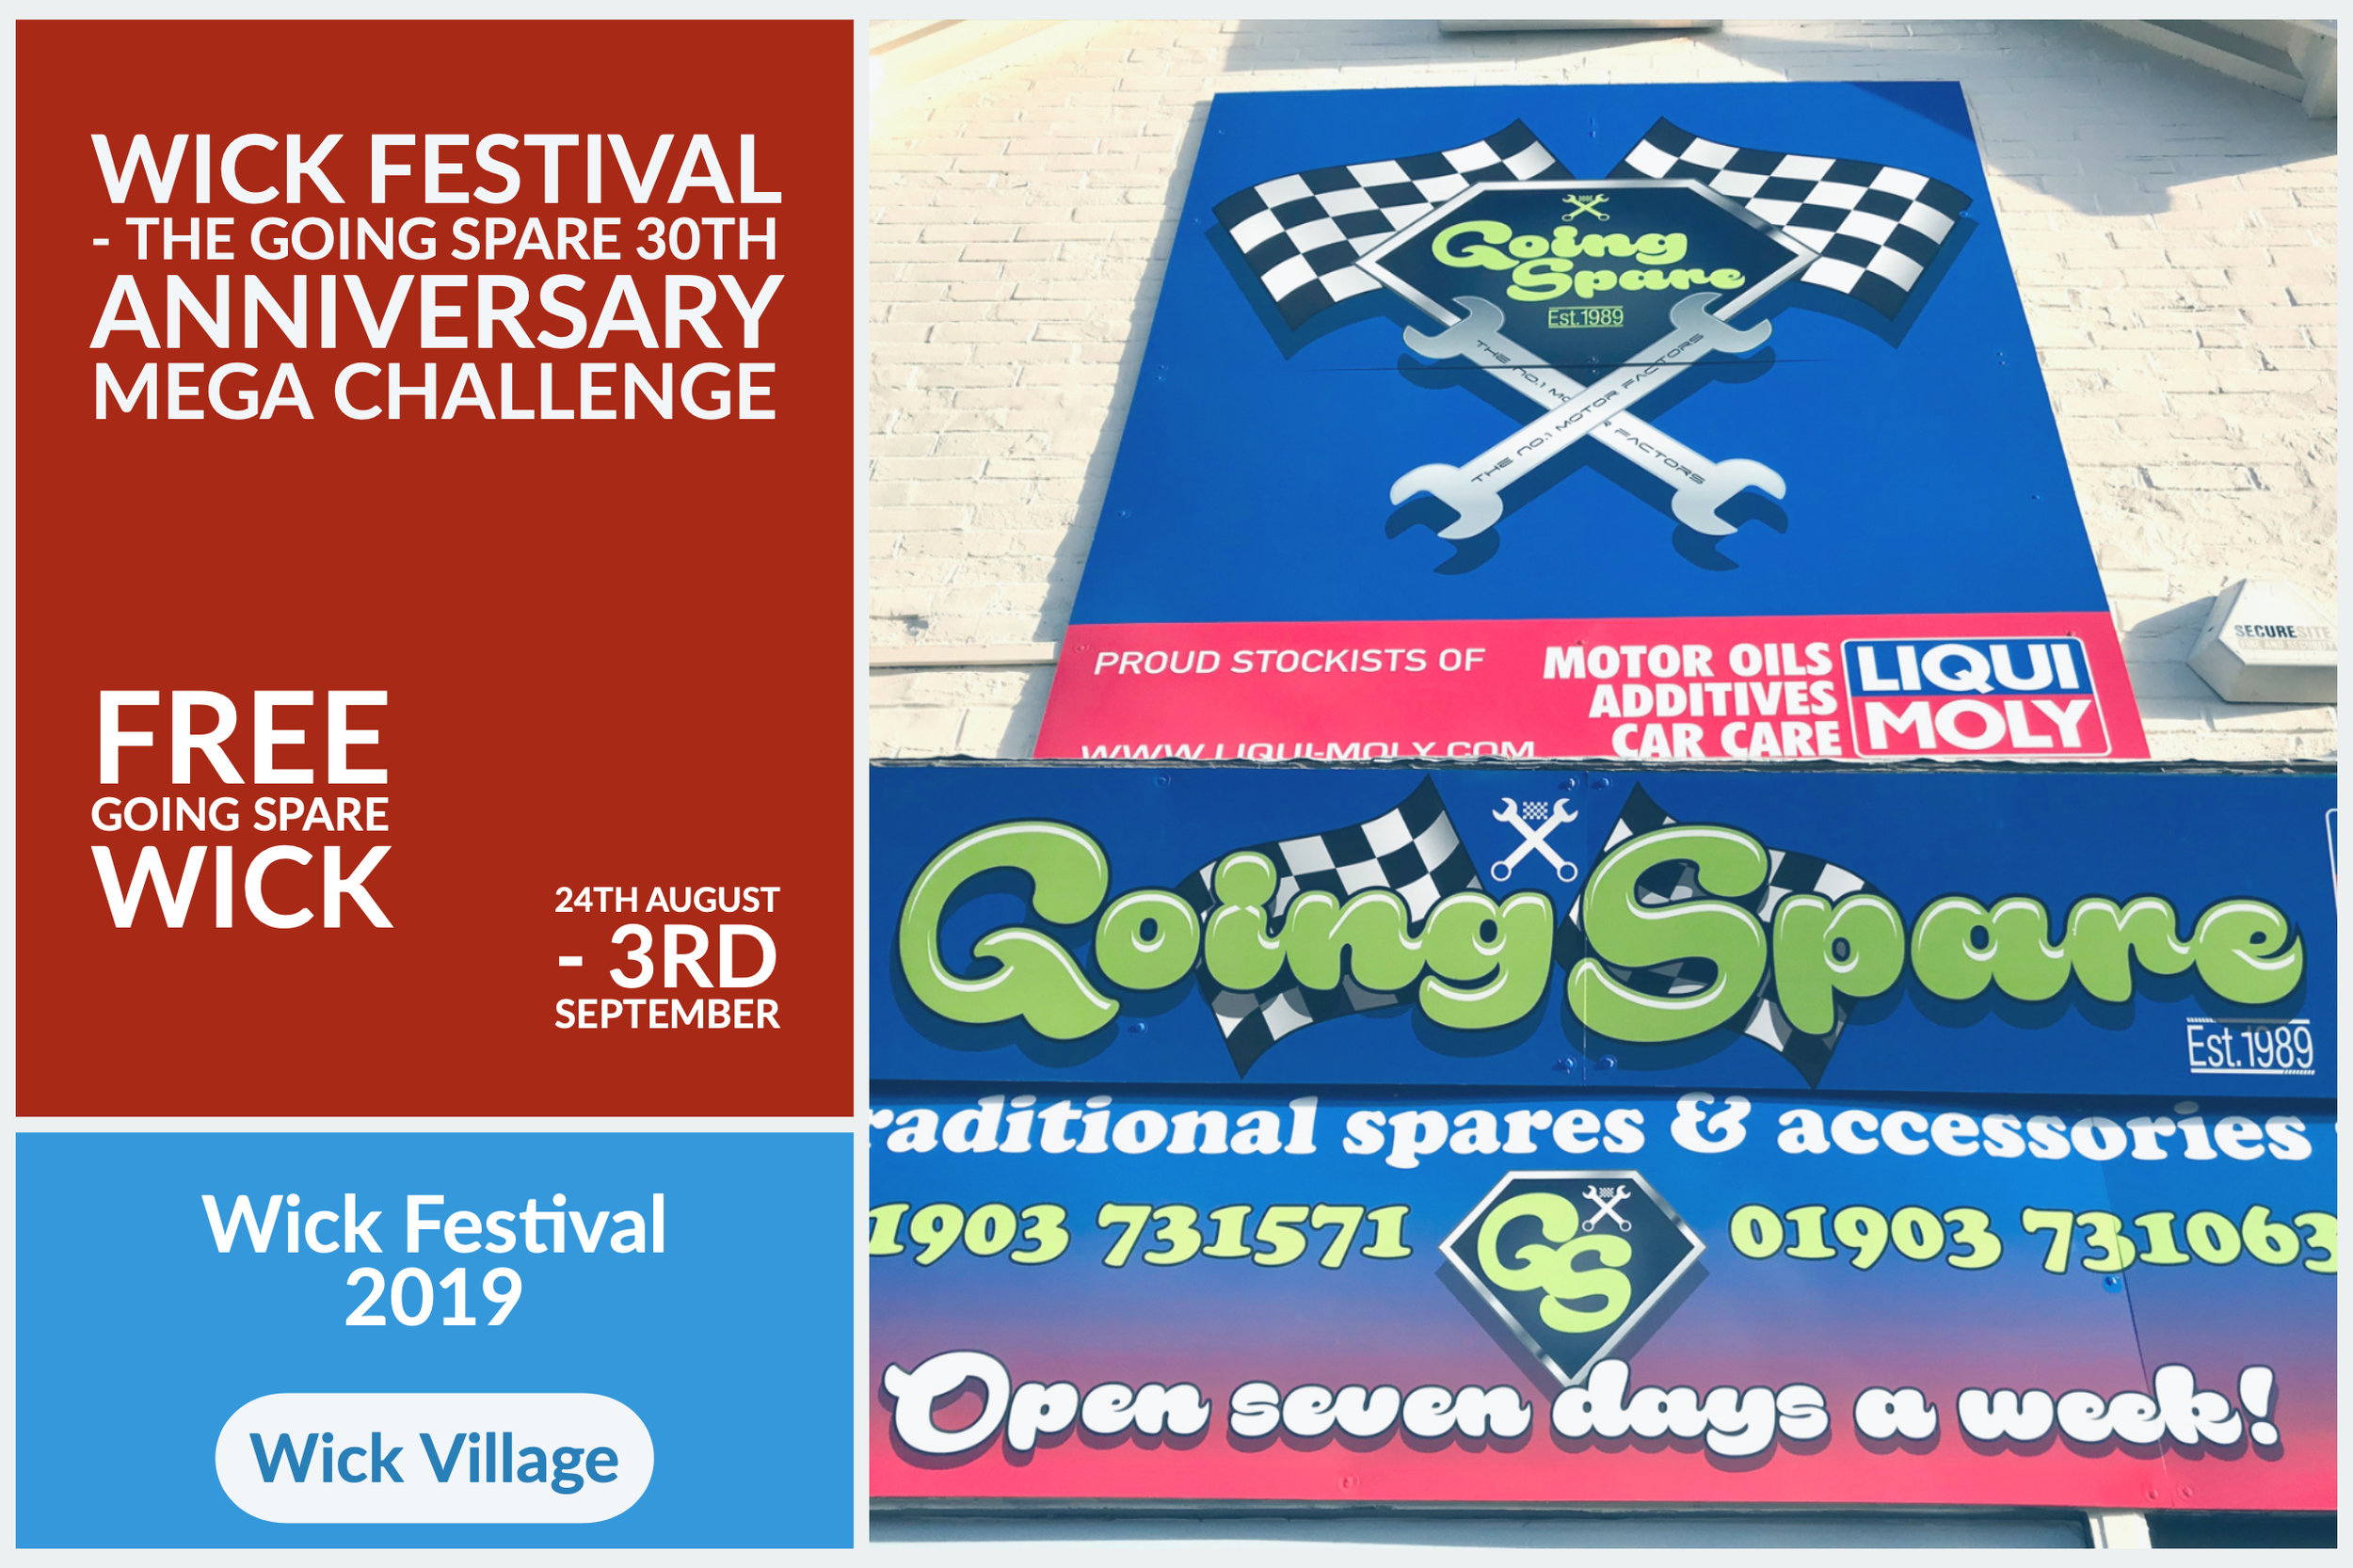 Wick Festival - The Going Spare 30th Anniversary Mega Challenge